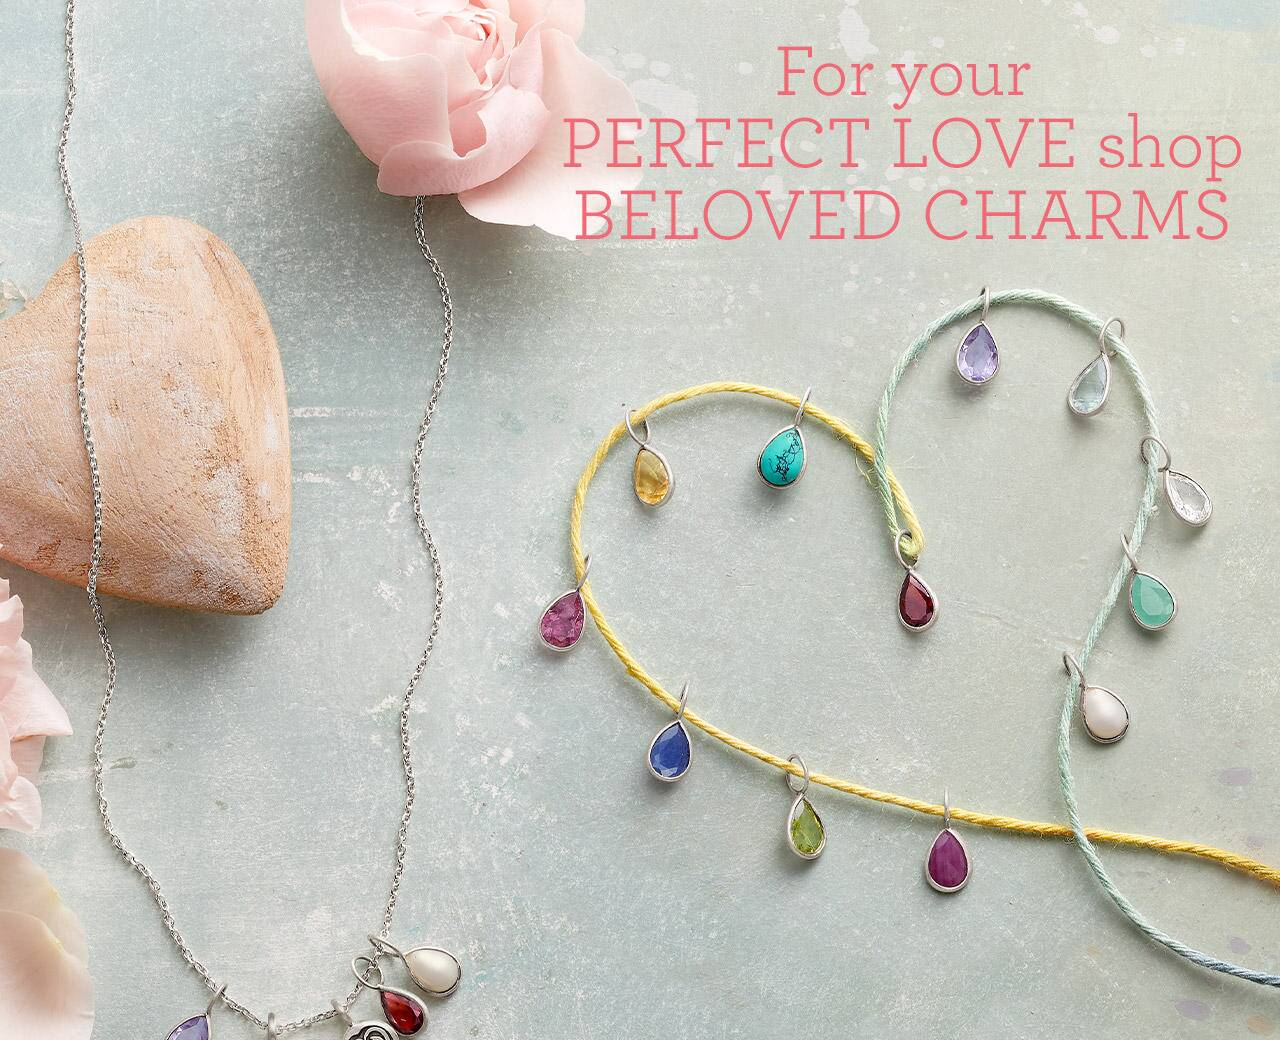 Beloved Charms